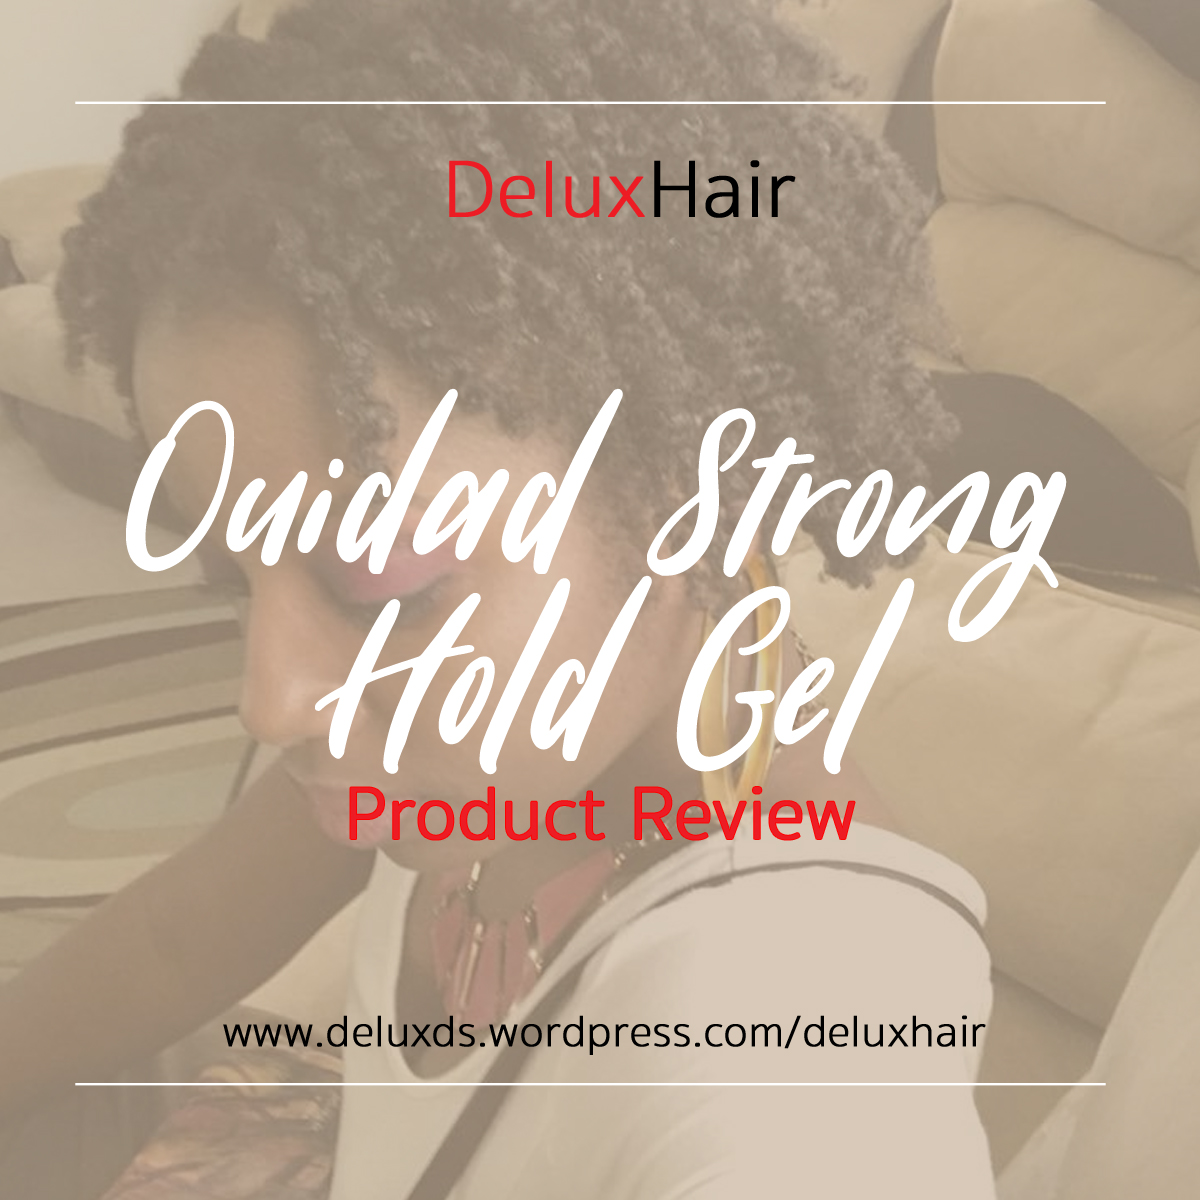 DeluxHair - Ouidad Advanced Climate Control Heat & Humidity Strong Hold Gel Product Review